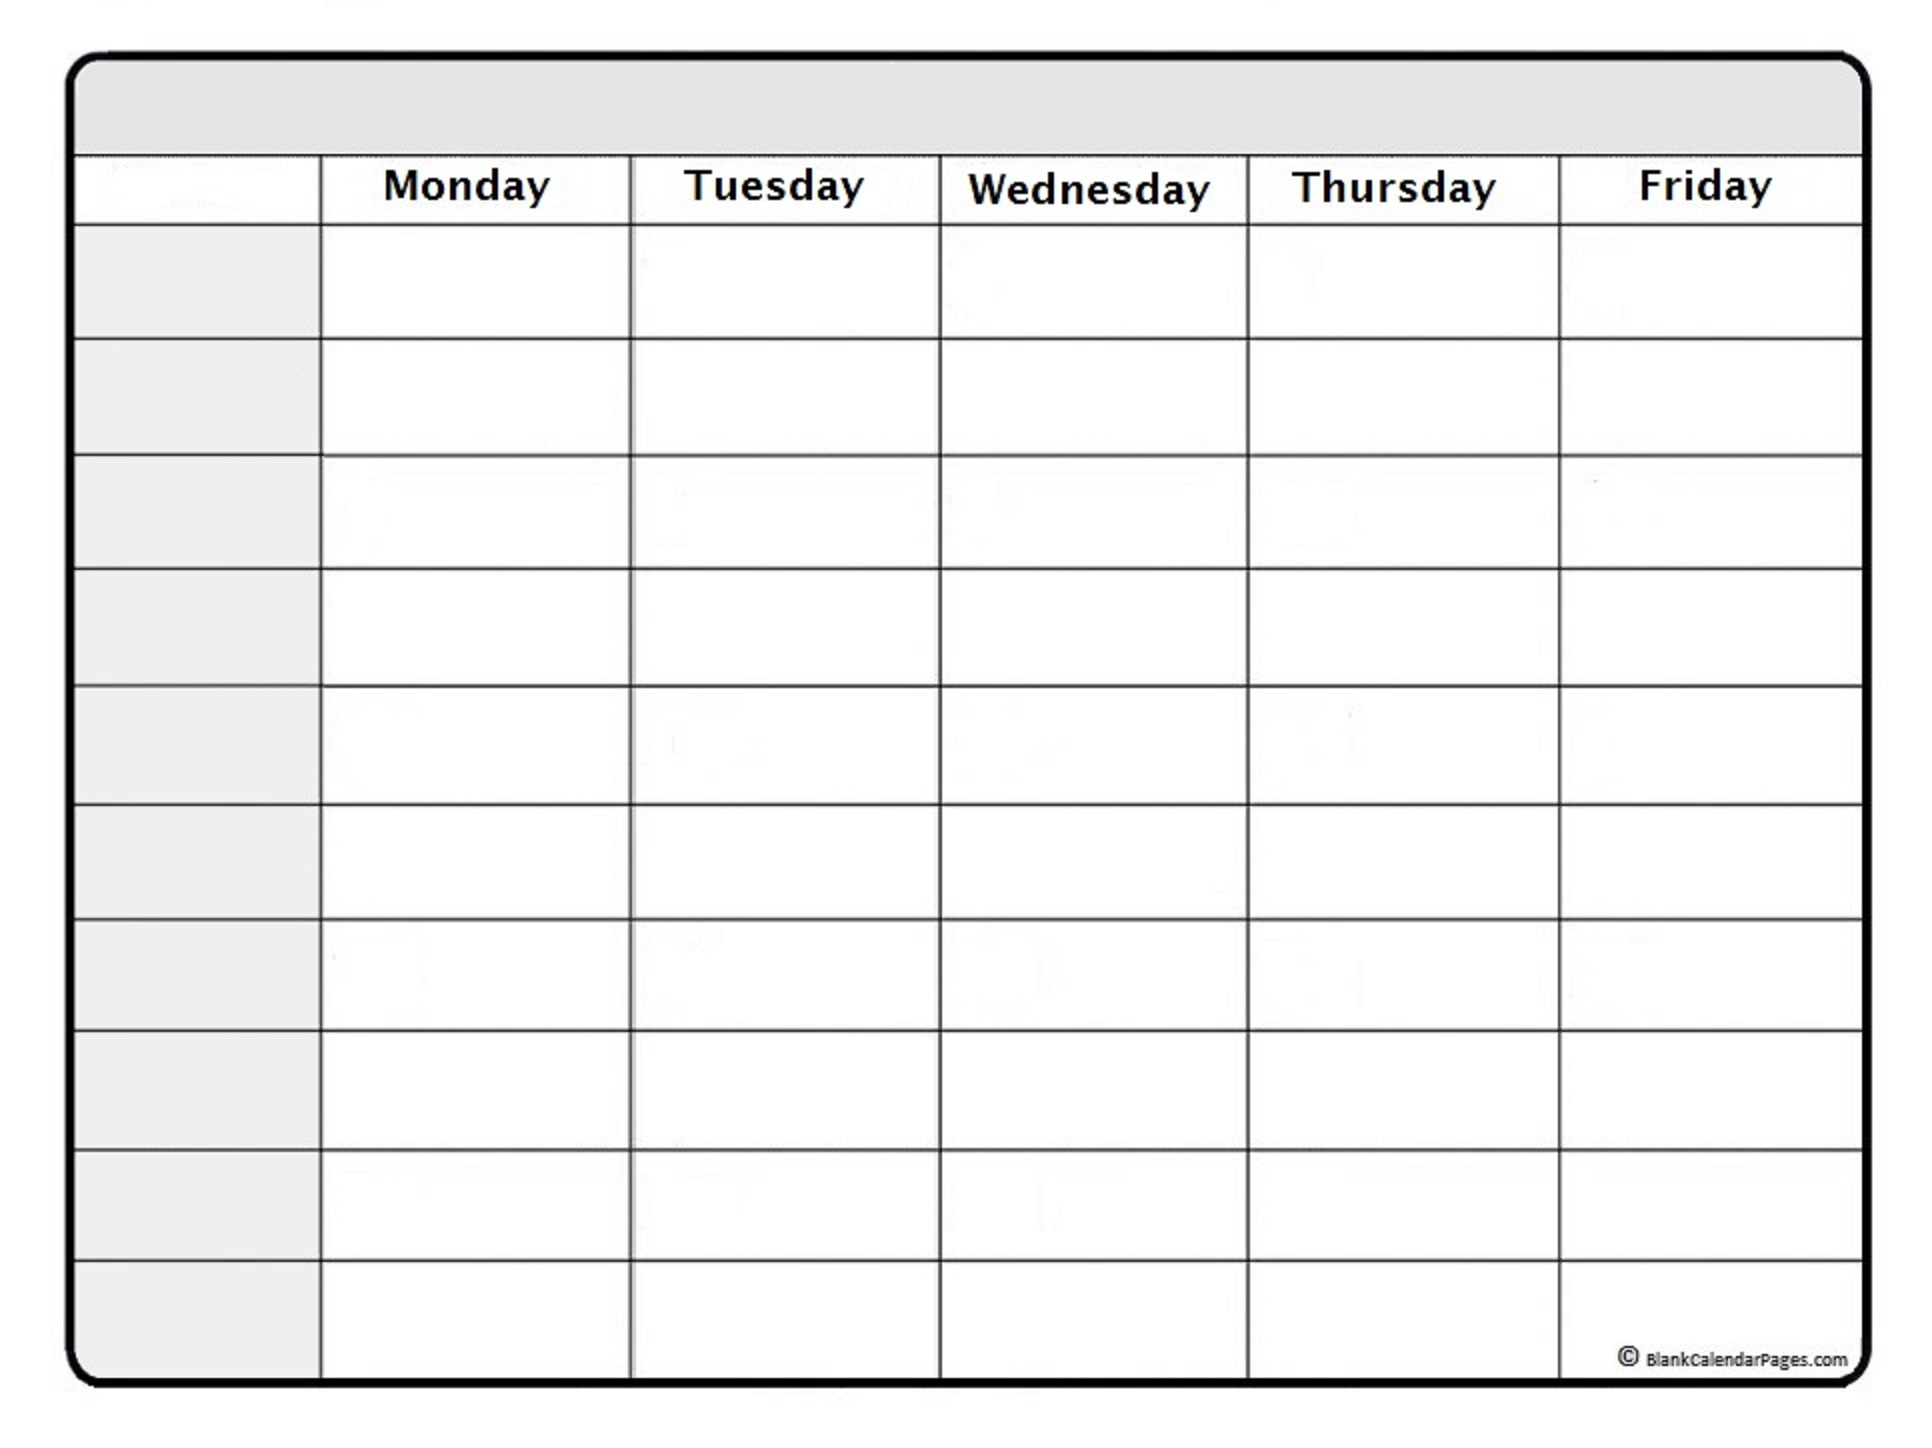 May 2018 weekly calendar template. May 2018 weekly schedule printable